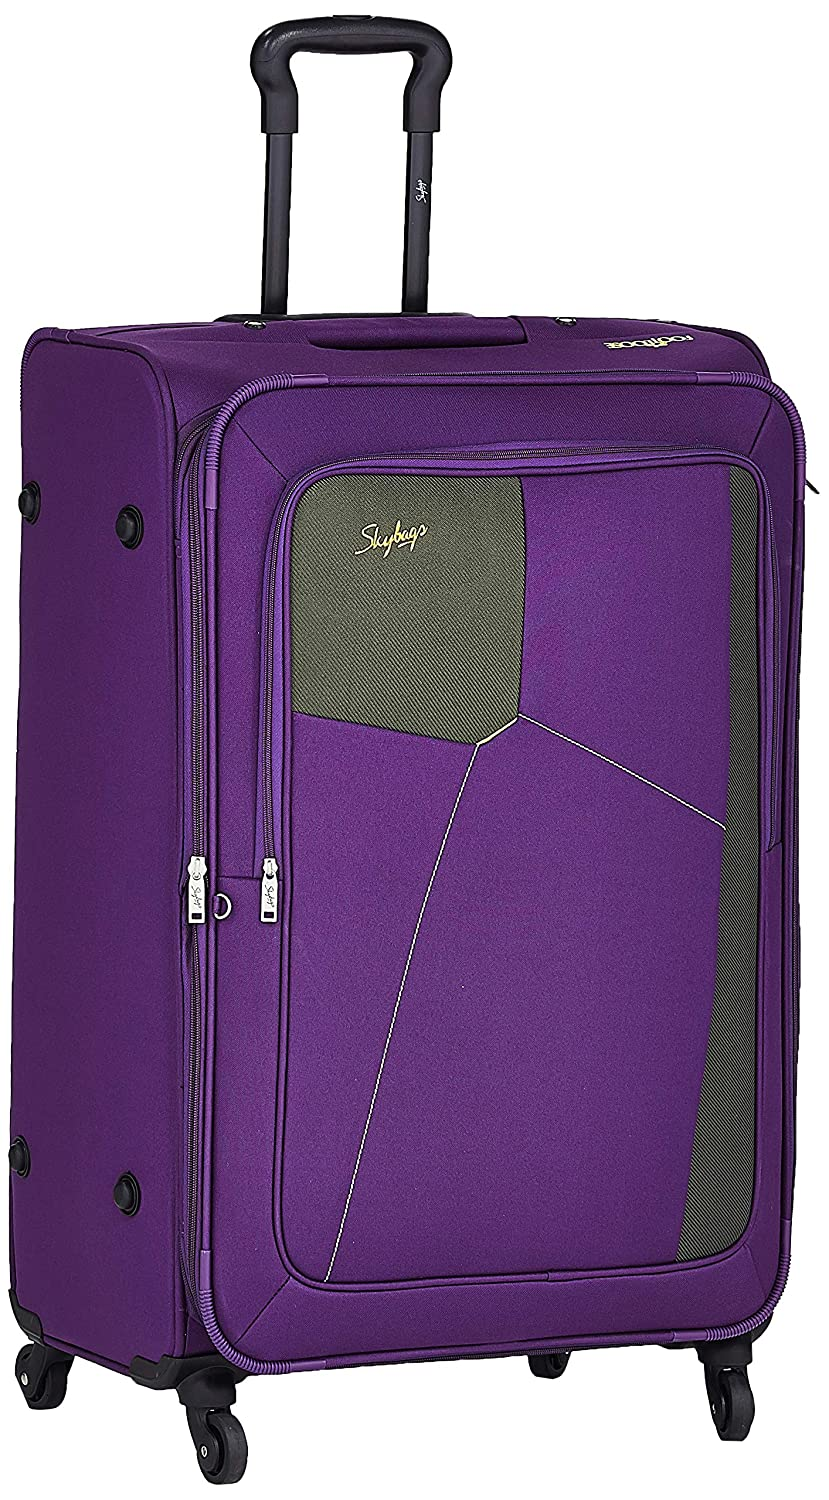 Skybags Rubik Polyester 78 cms Purple Softsided Check-in